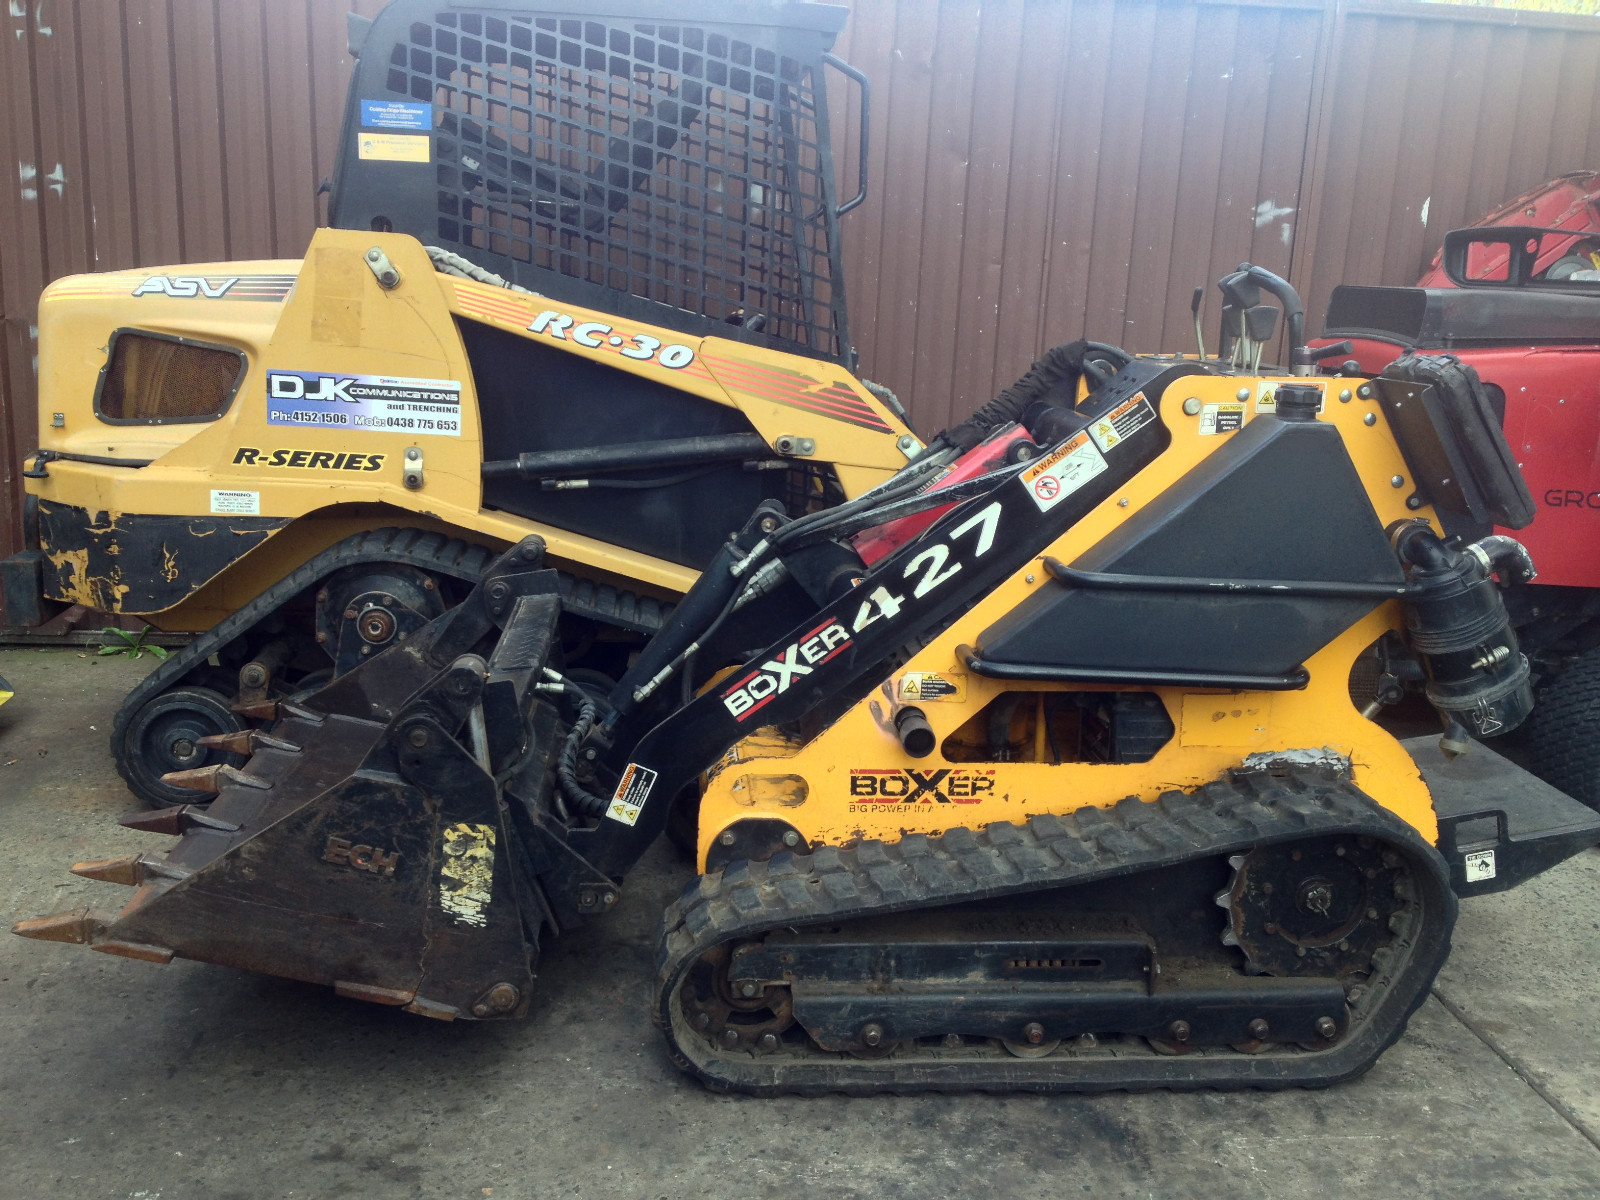 Mini Skid Steer : Boxer brute tracked mini skid steer loader with